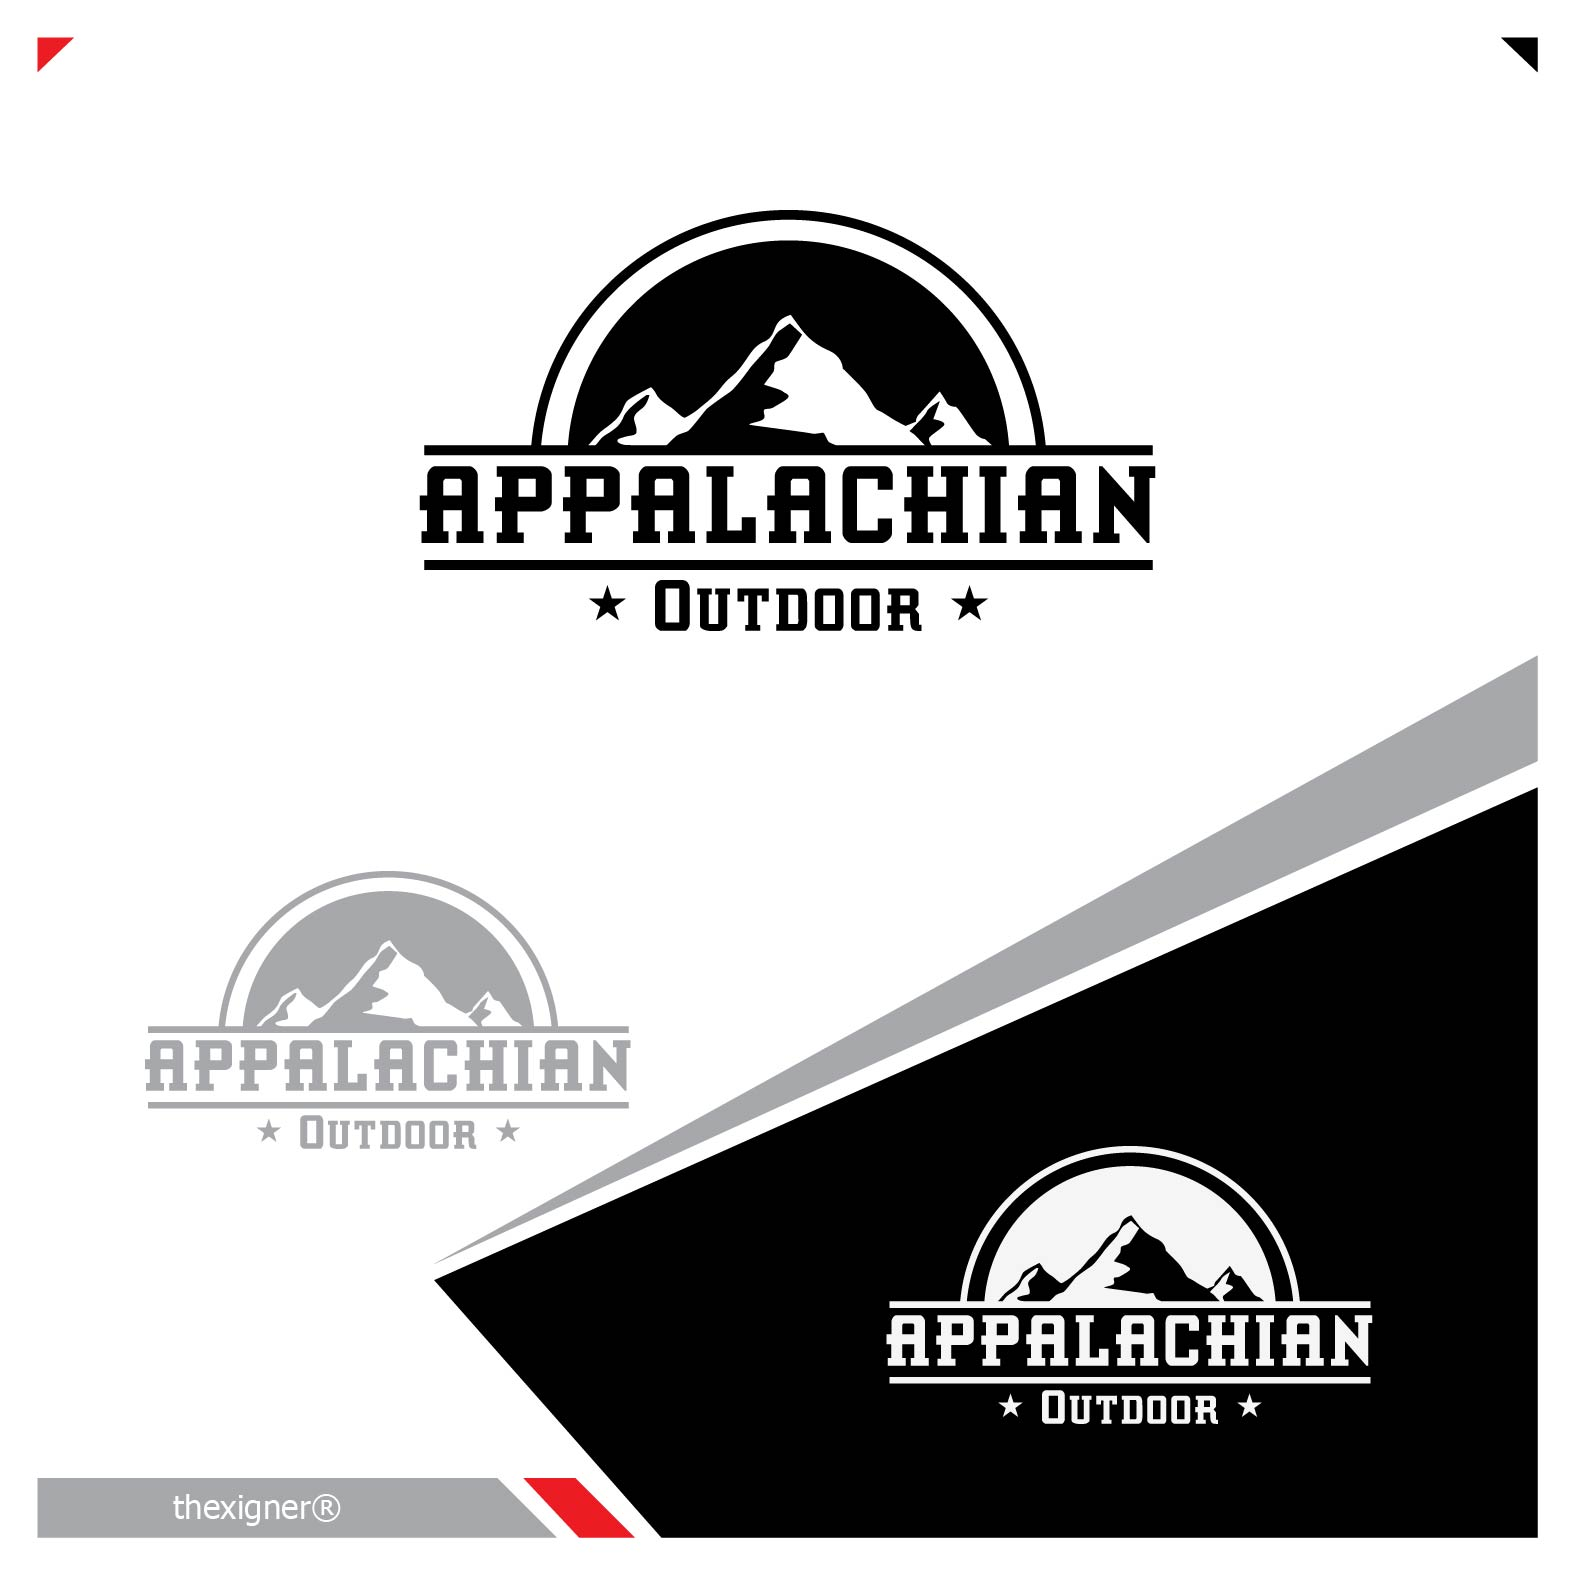 Logo Design by lagalag - Entry No. 17 in the Logo Design Contest Imaginative Logo Design for Appalachian Outdoor Readiness & Essentials.